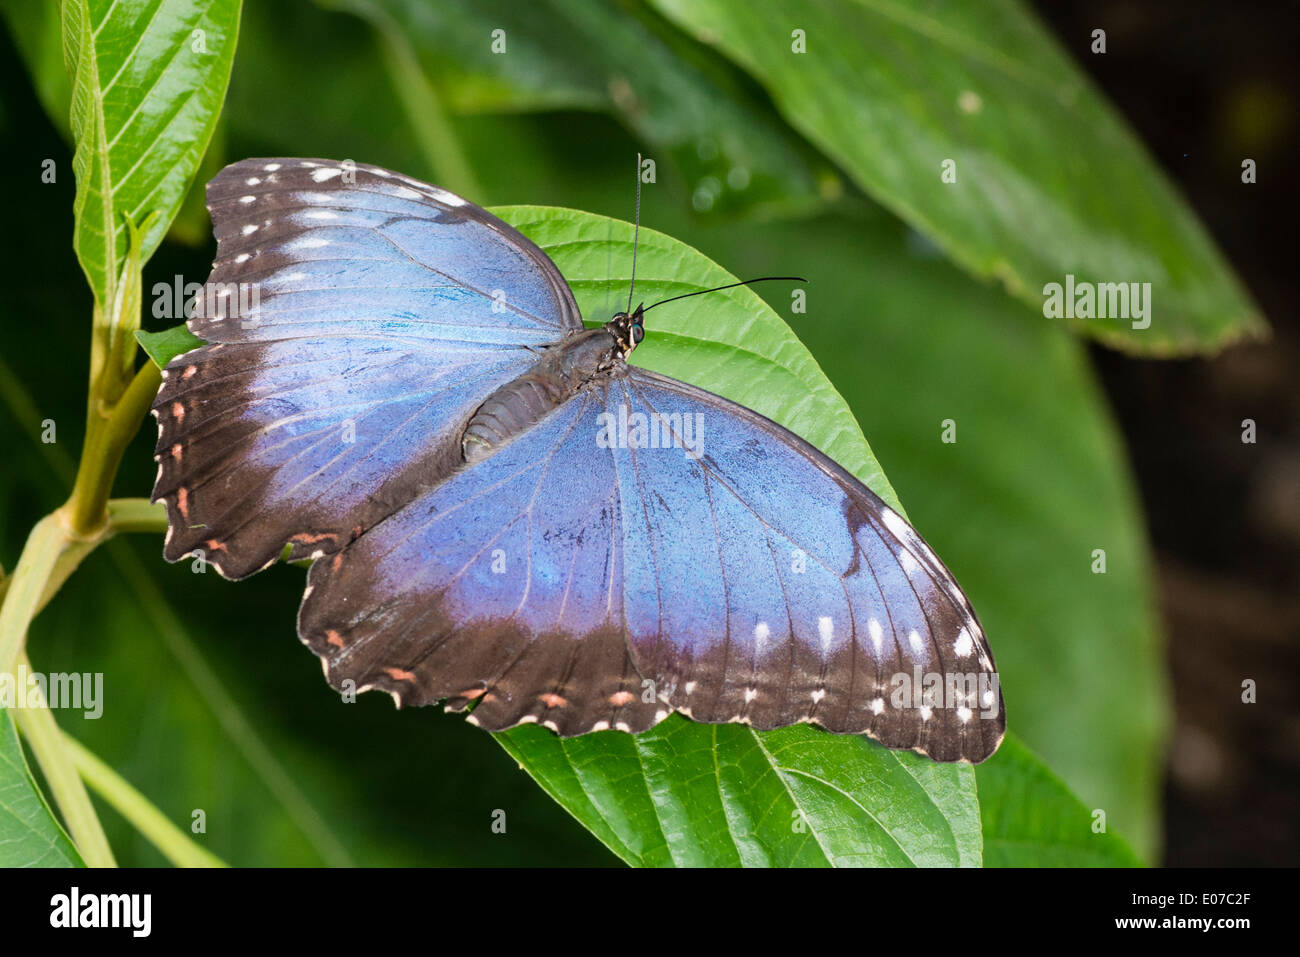 An adult Blue Morpho butterfly basking - Stock Image